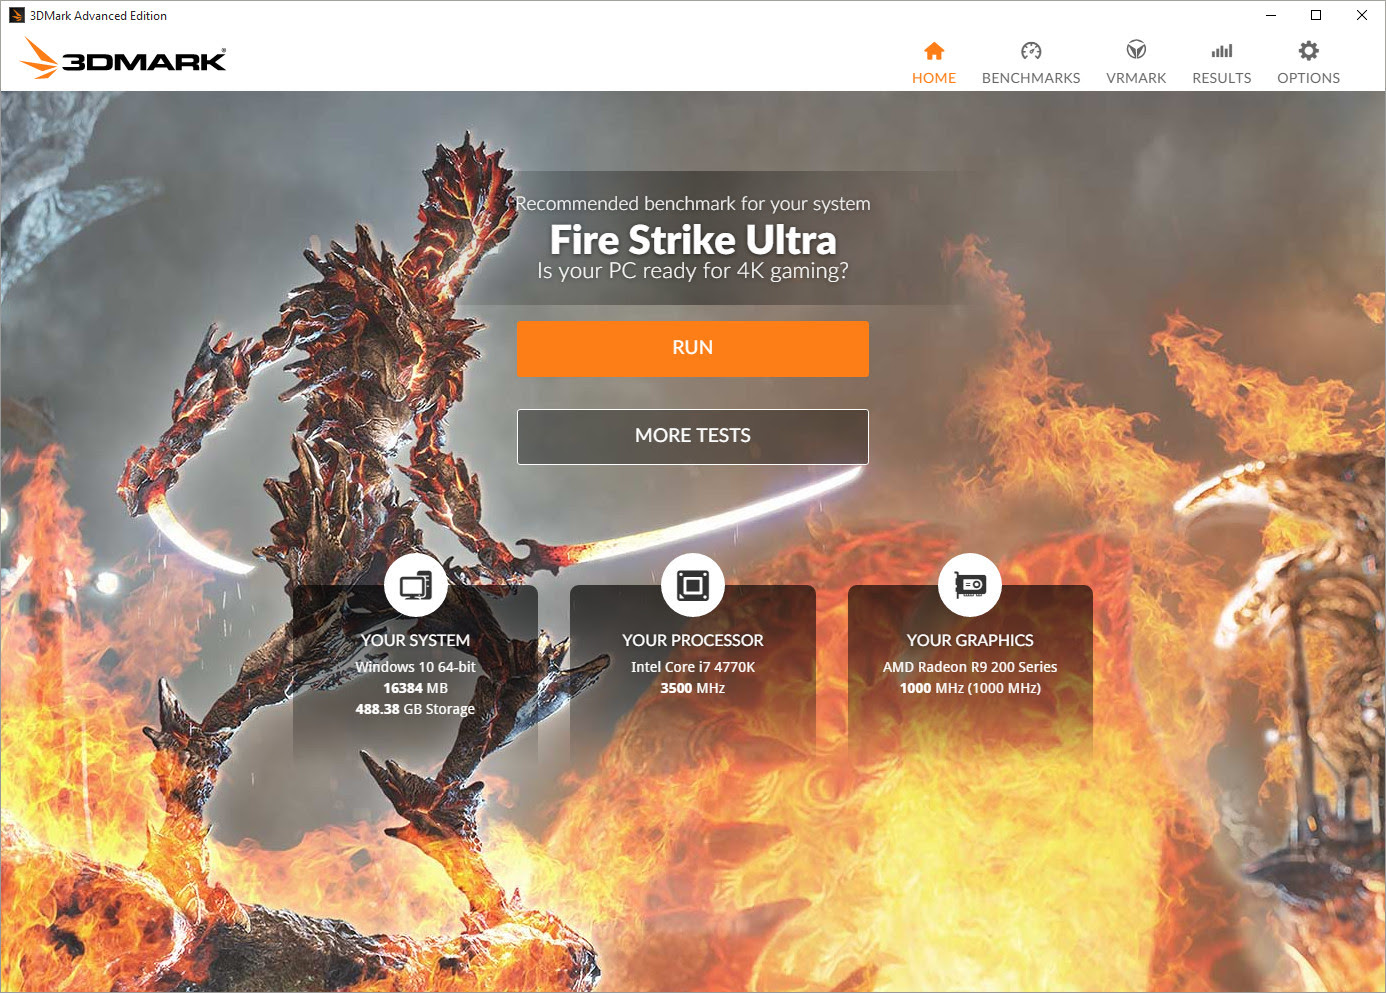 3DMark Home screen interface for 2016